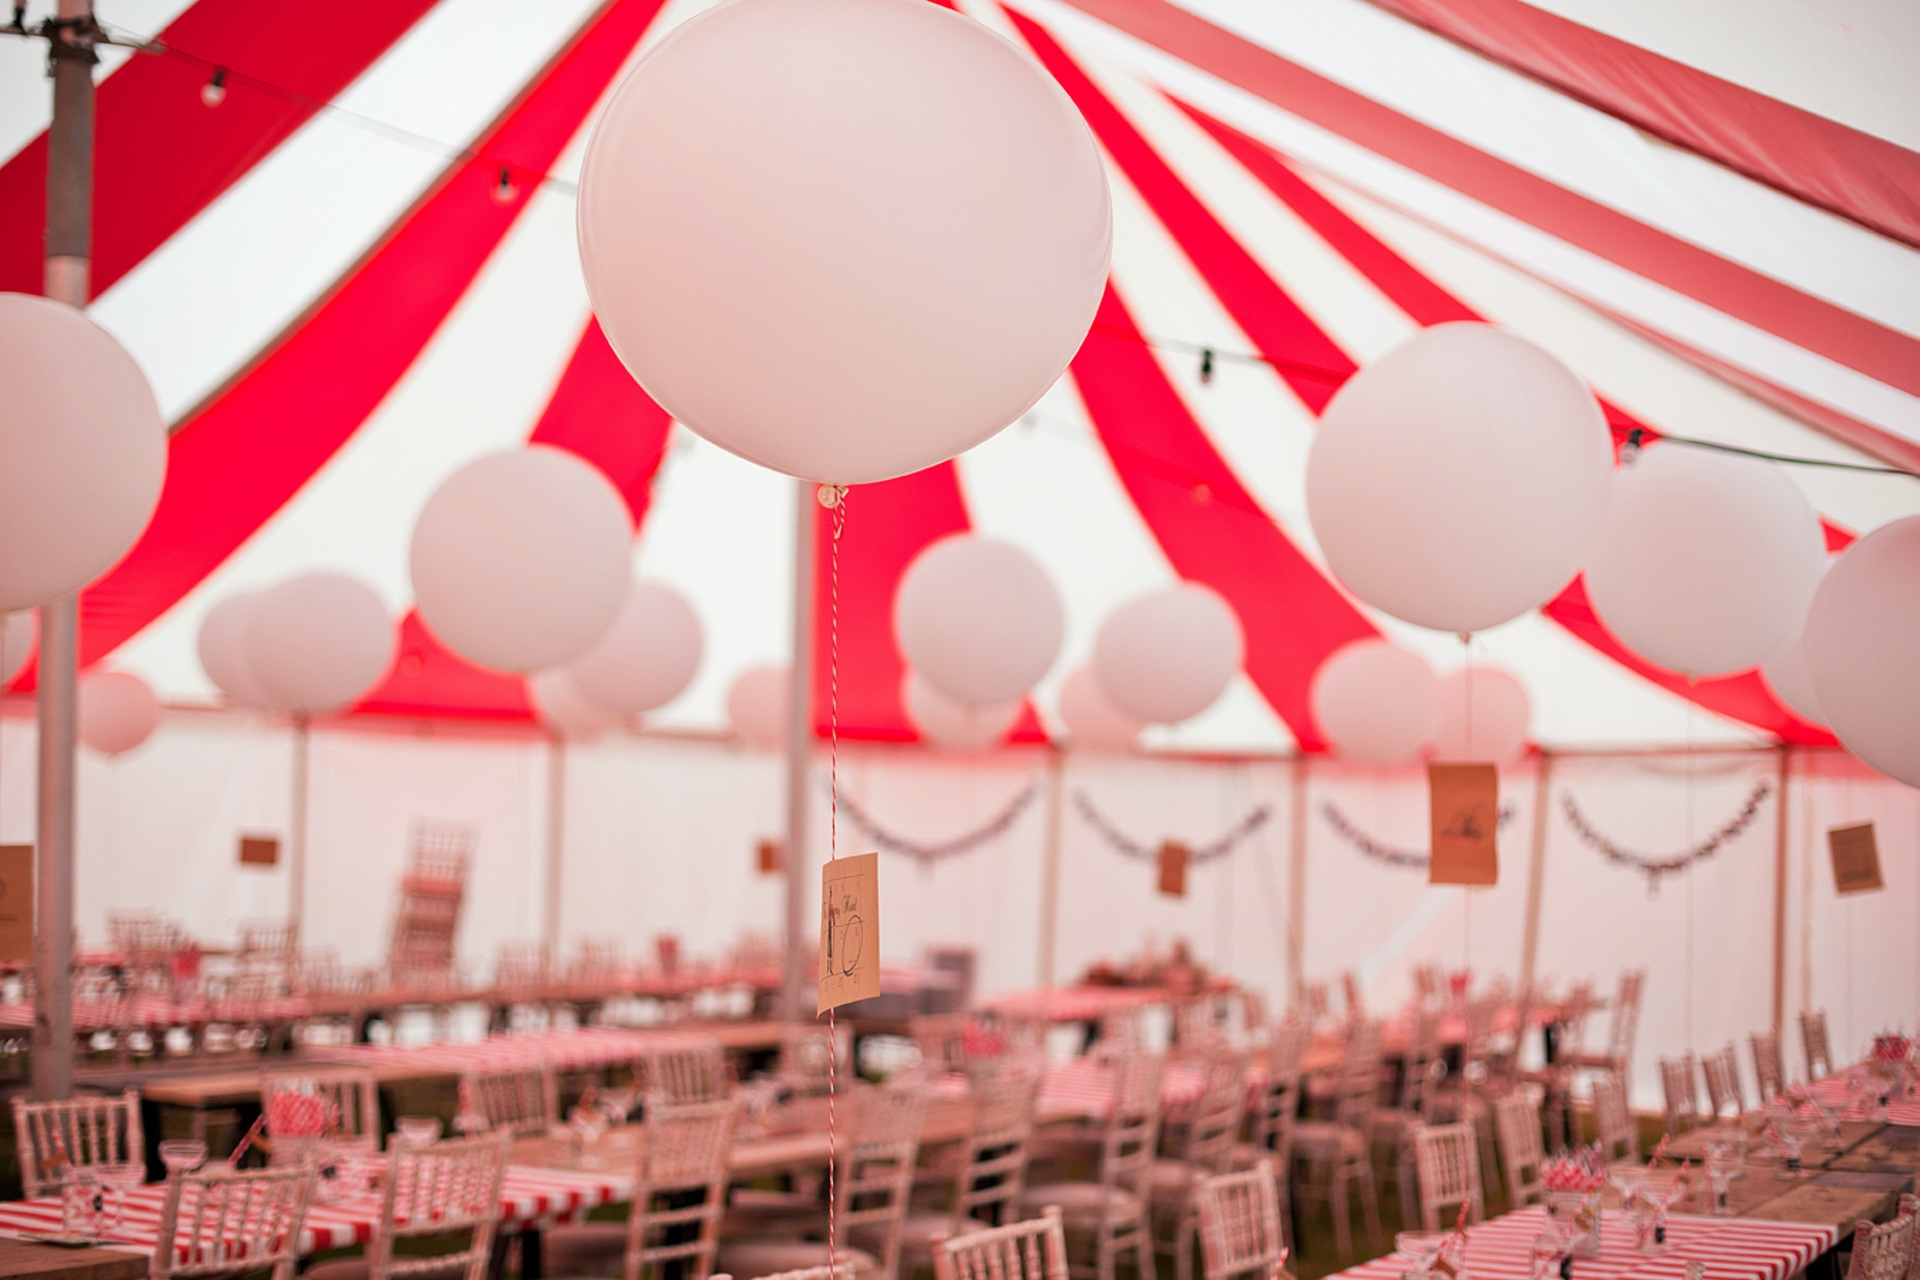 A beautiful wedding table setup inside a circus tent